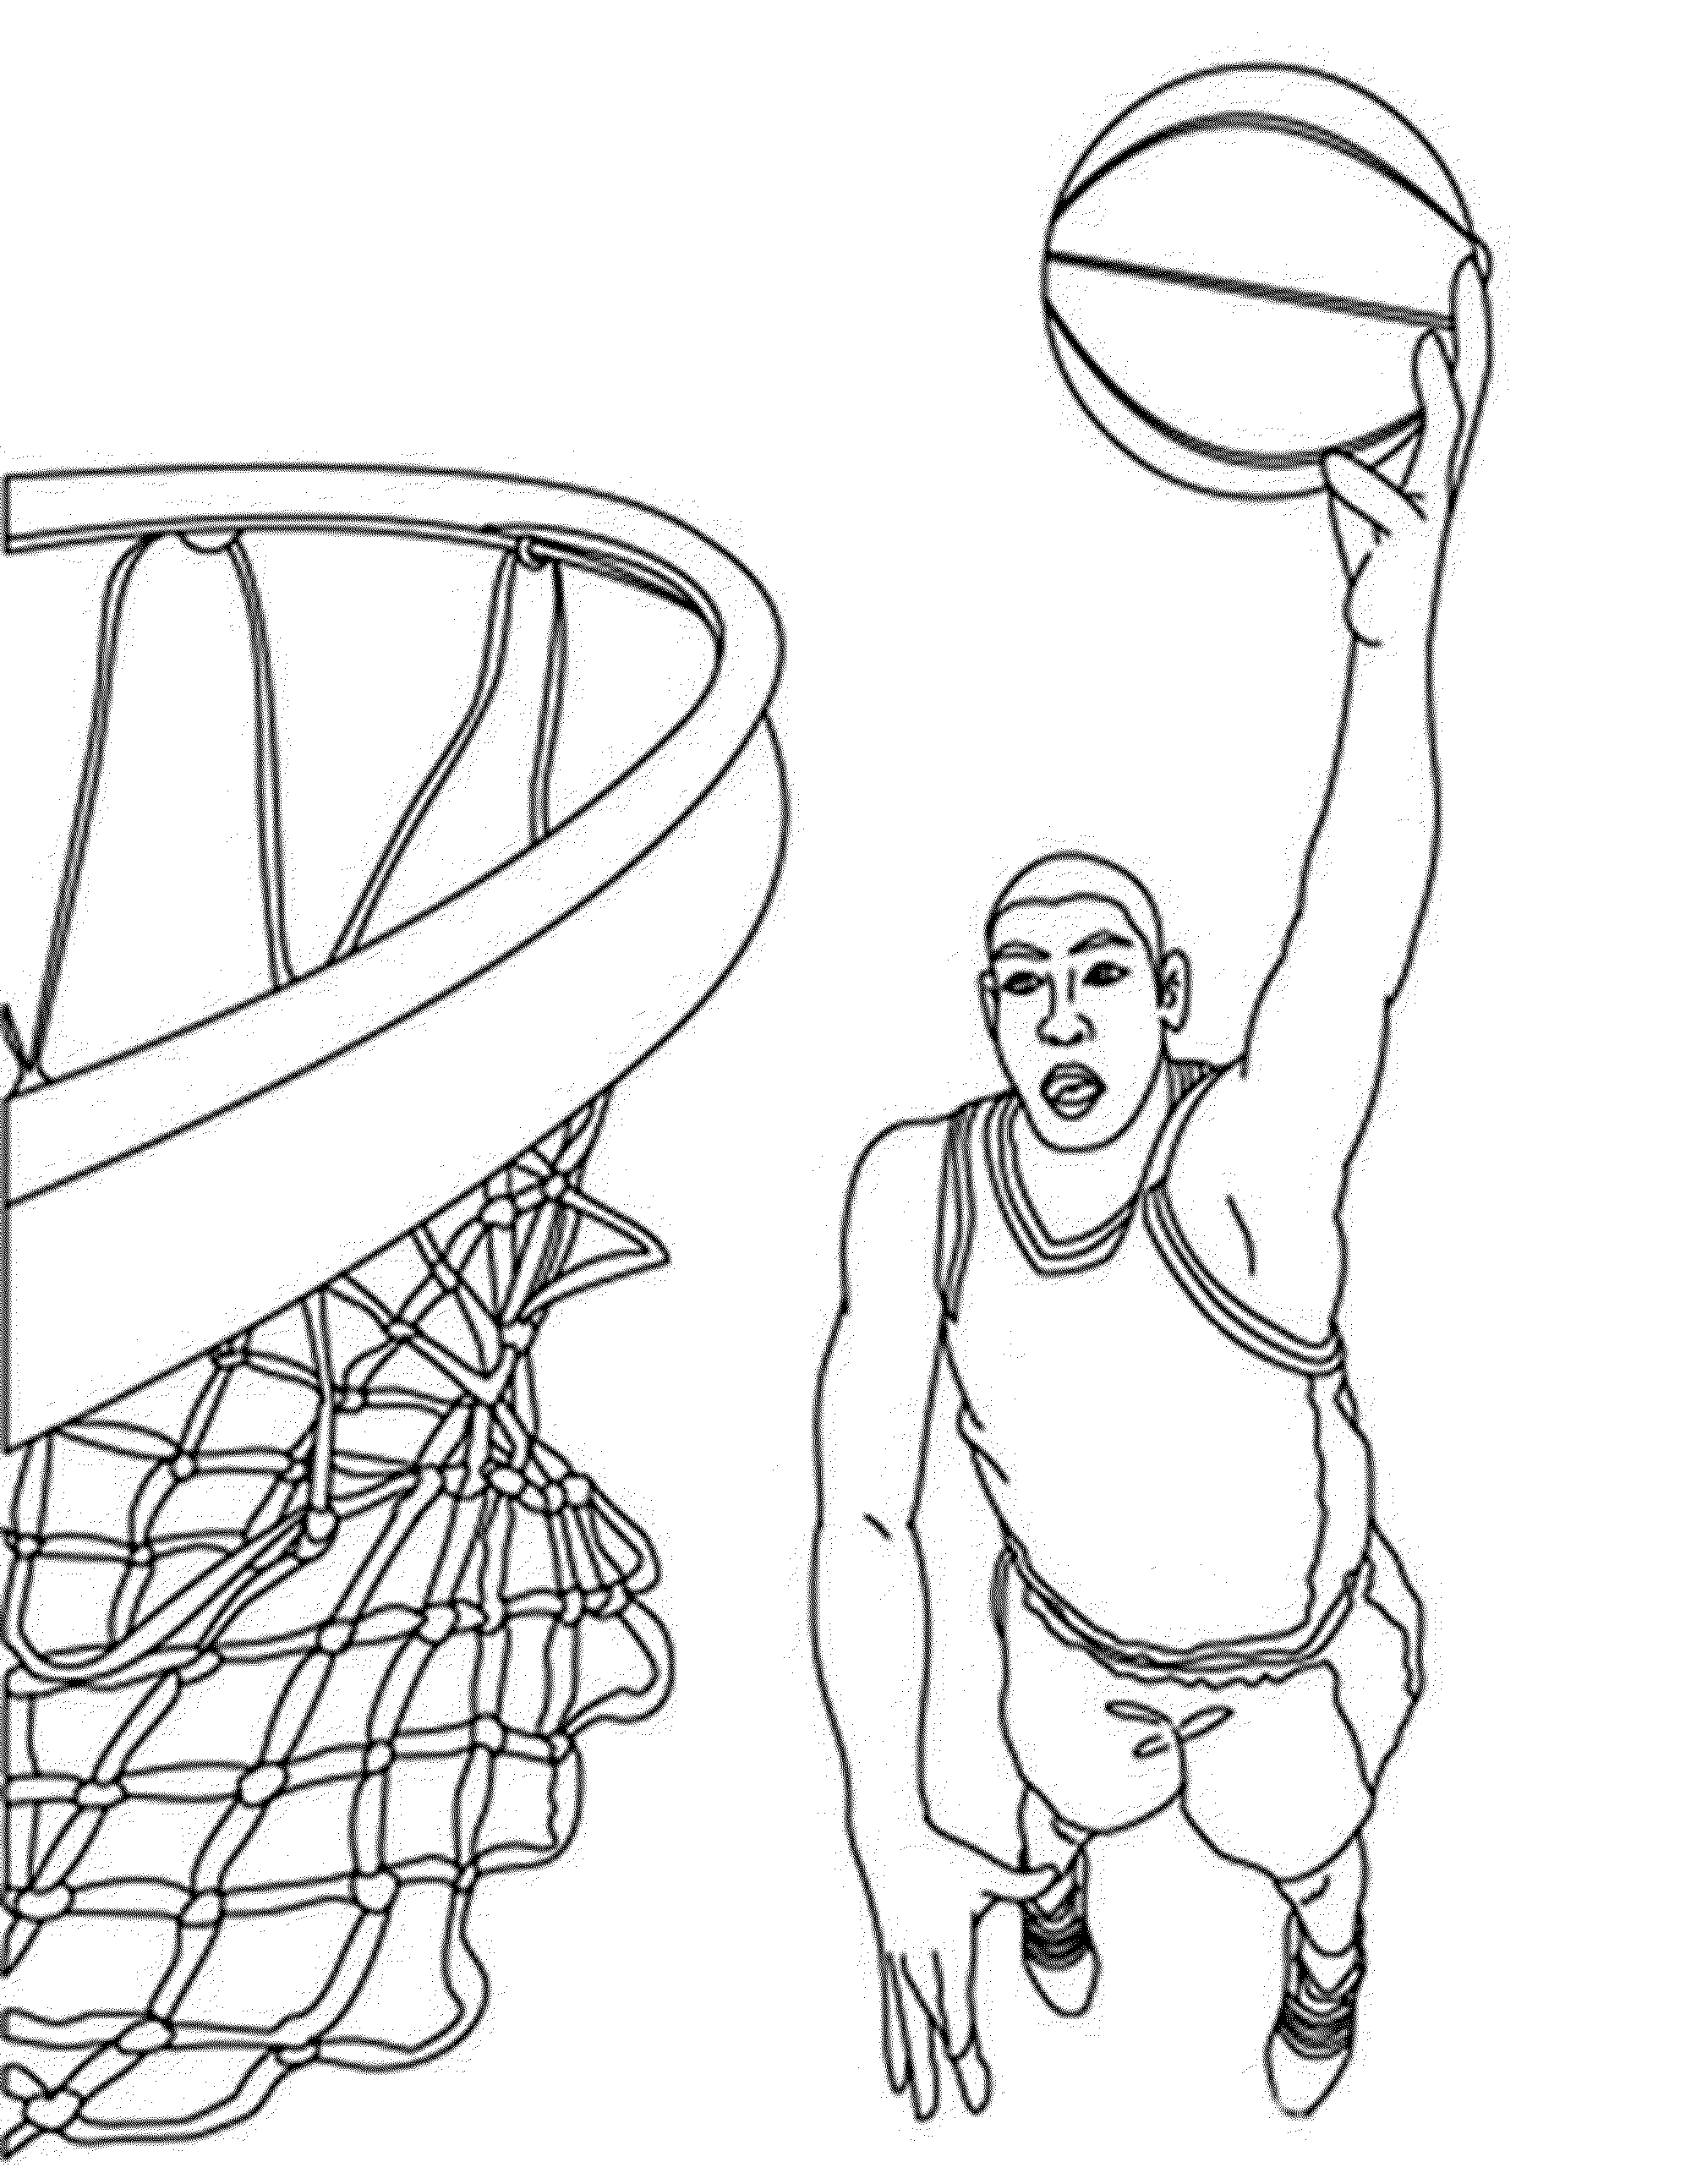 coloring pages of basketball basketball for kids basketball kids coloring pages coloring basketball pages of